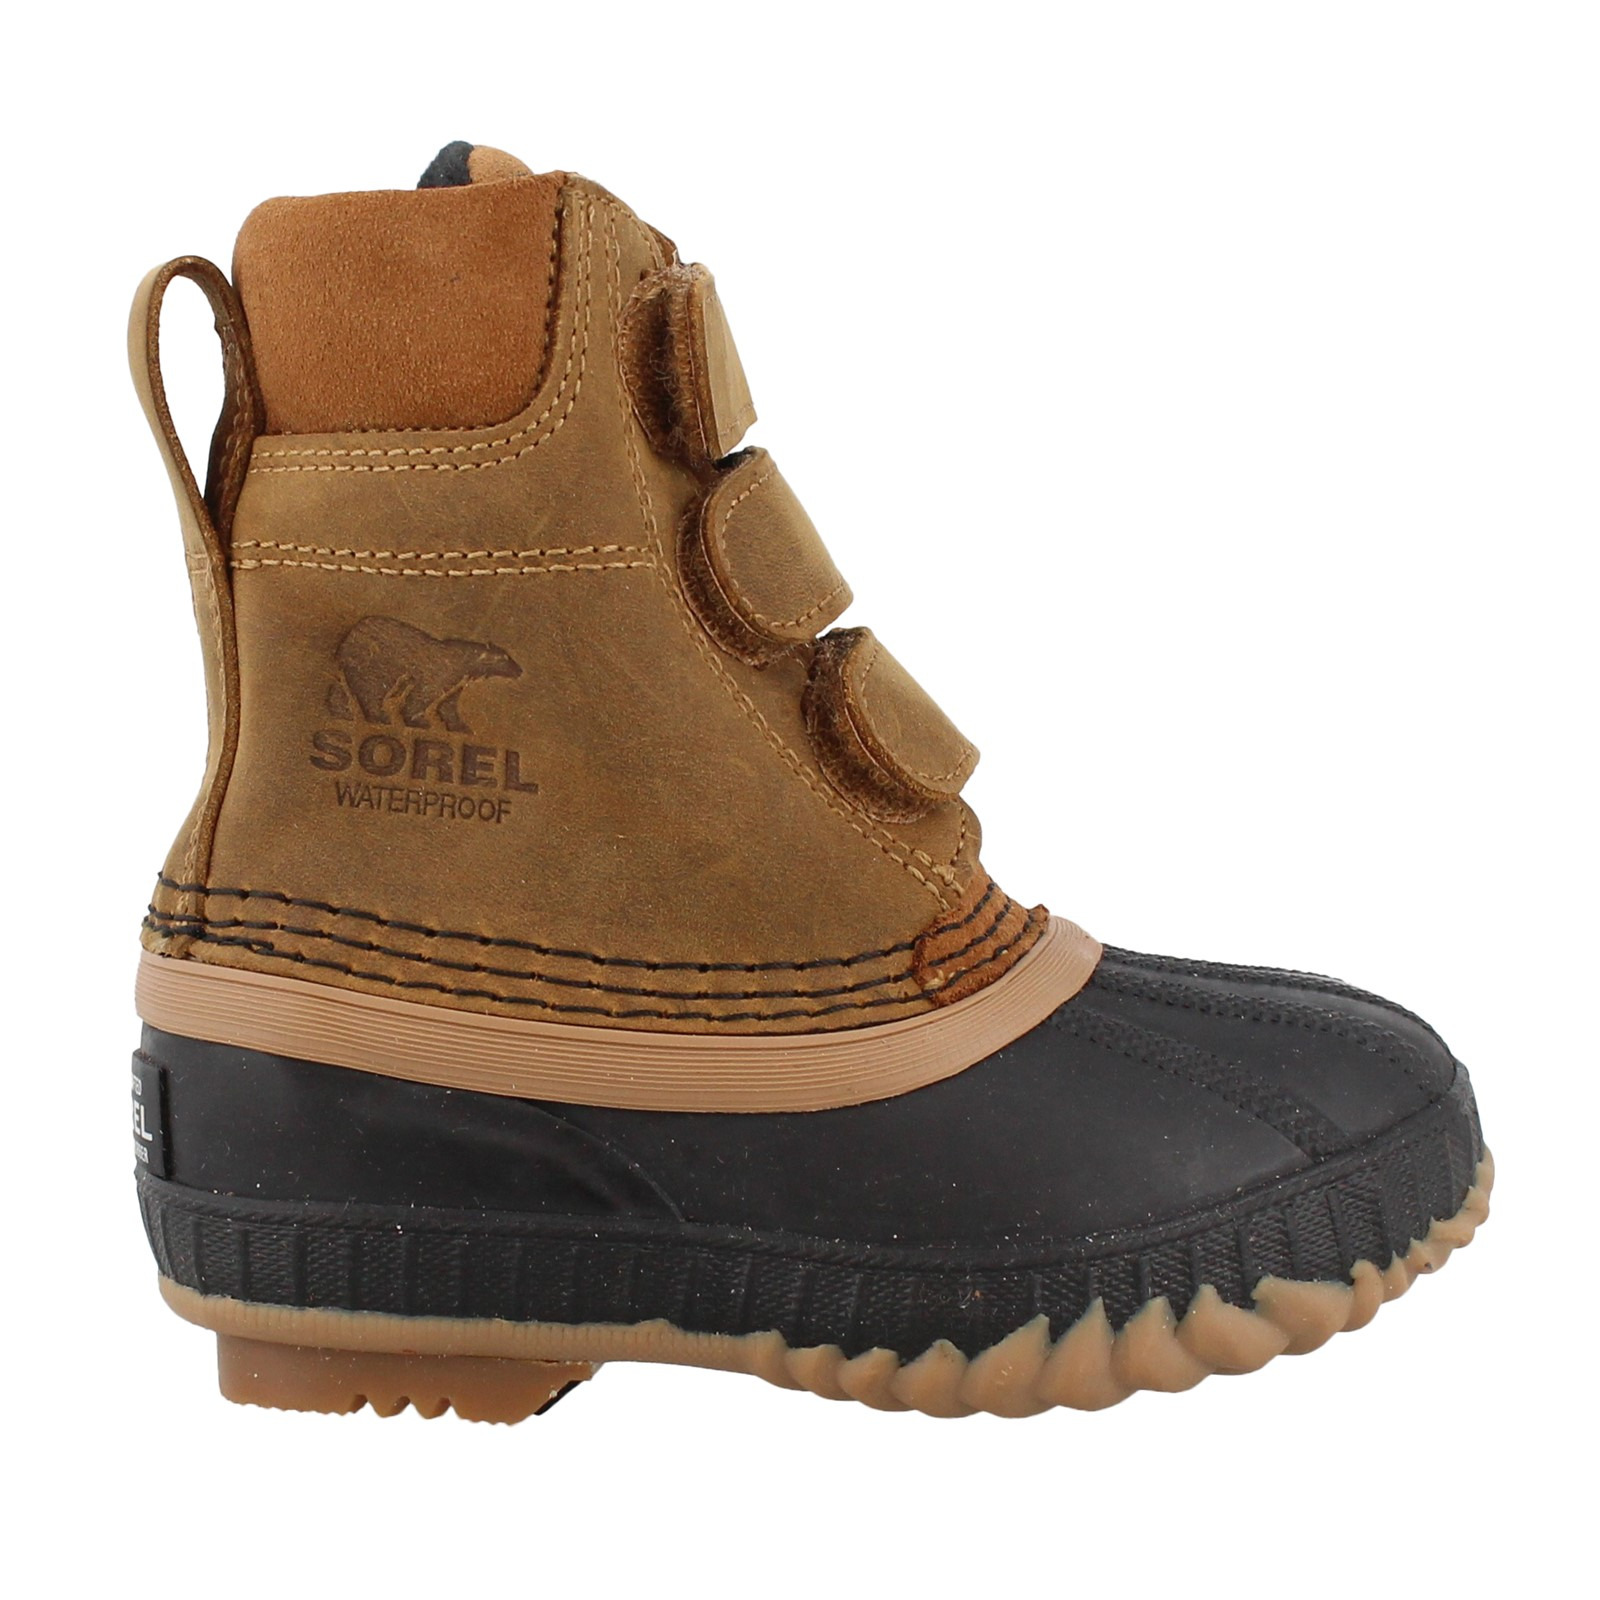 Little Kids' Sorel, Cheyanne II Duck Boot